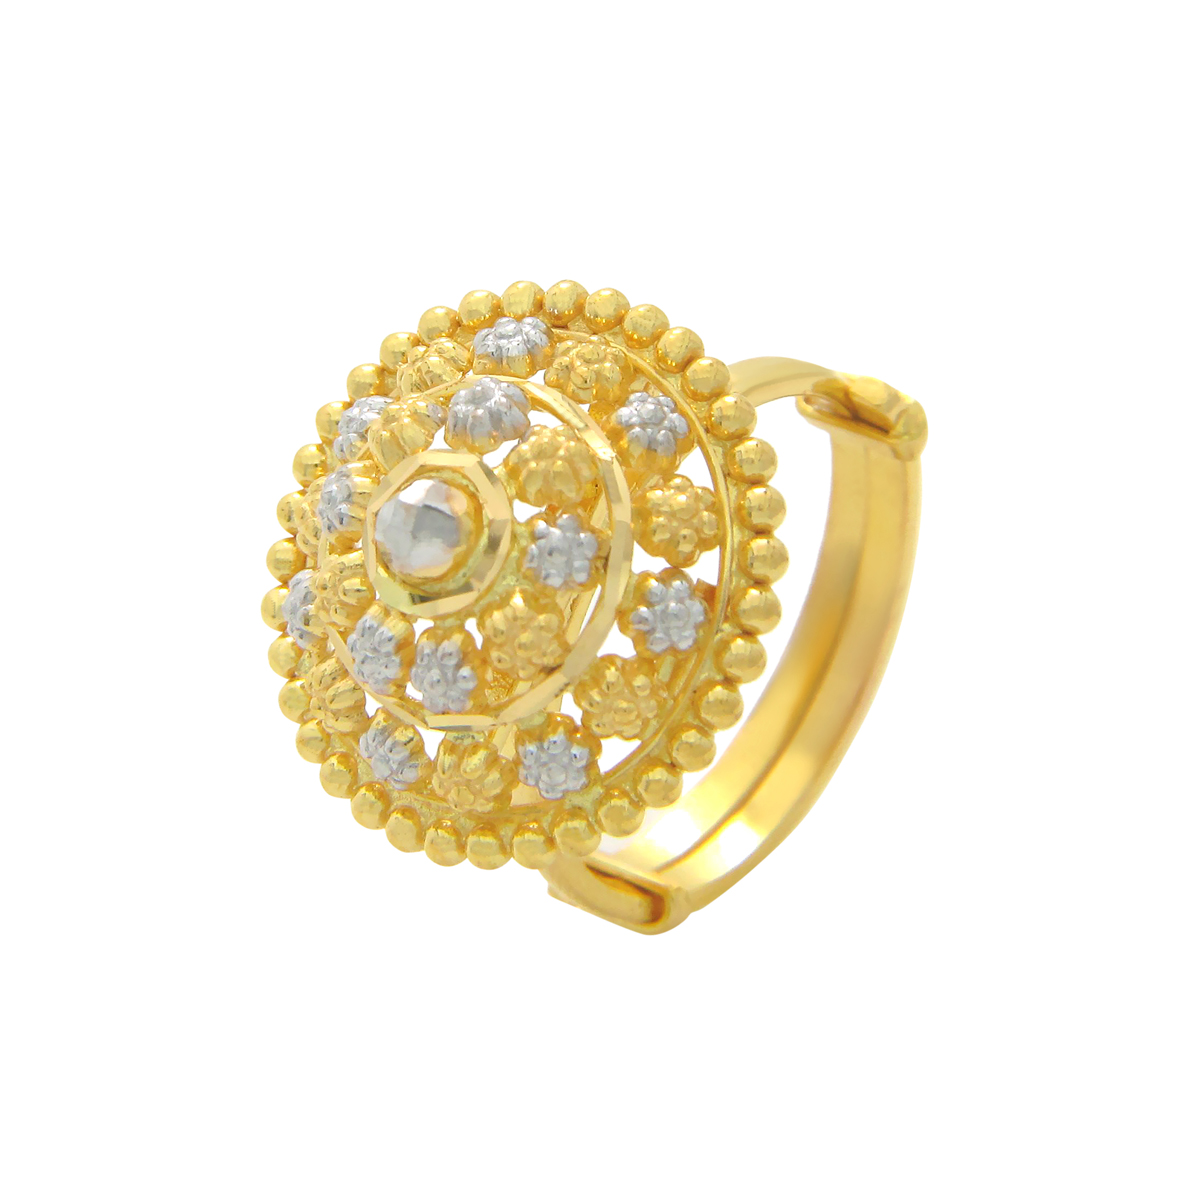 Popley 22Kt Gold Bandhan Ring - A3